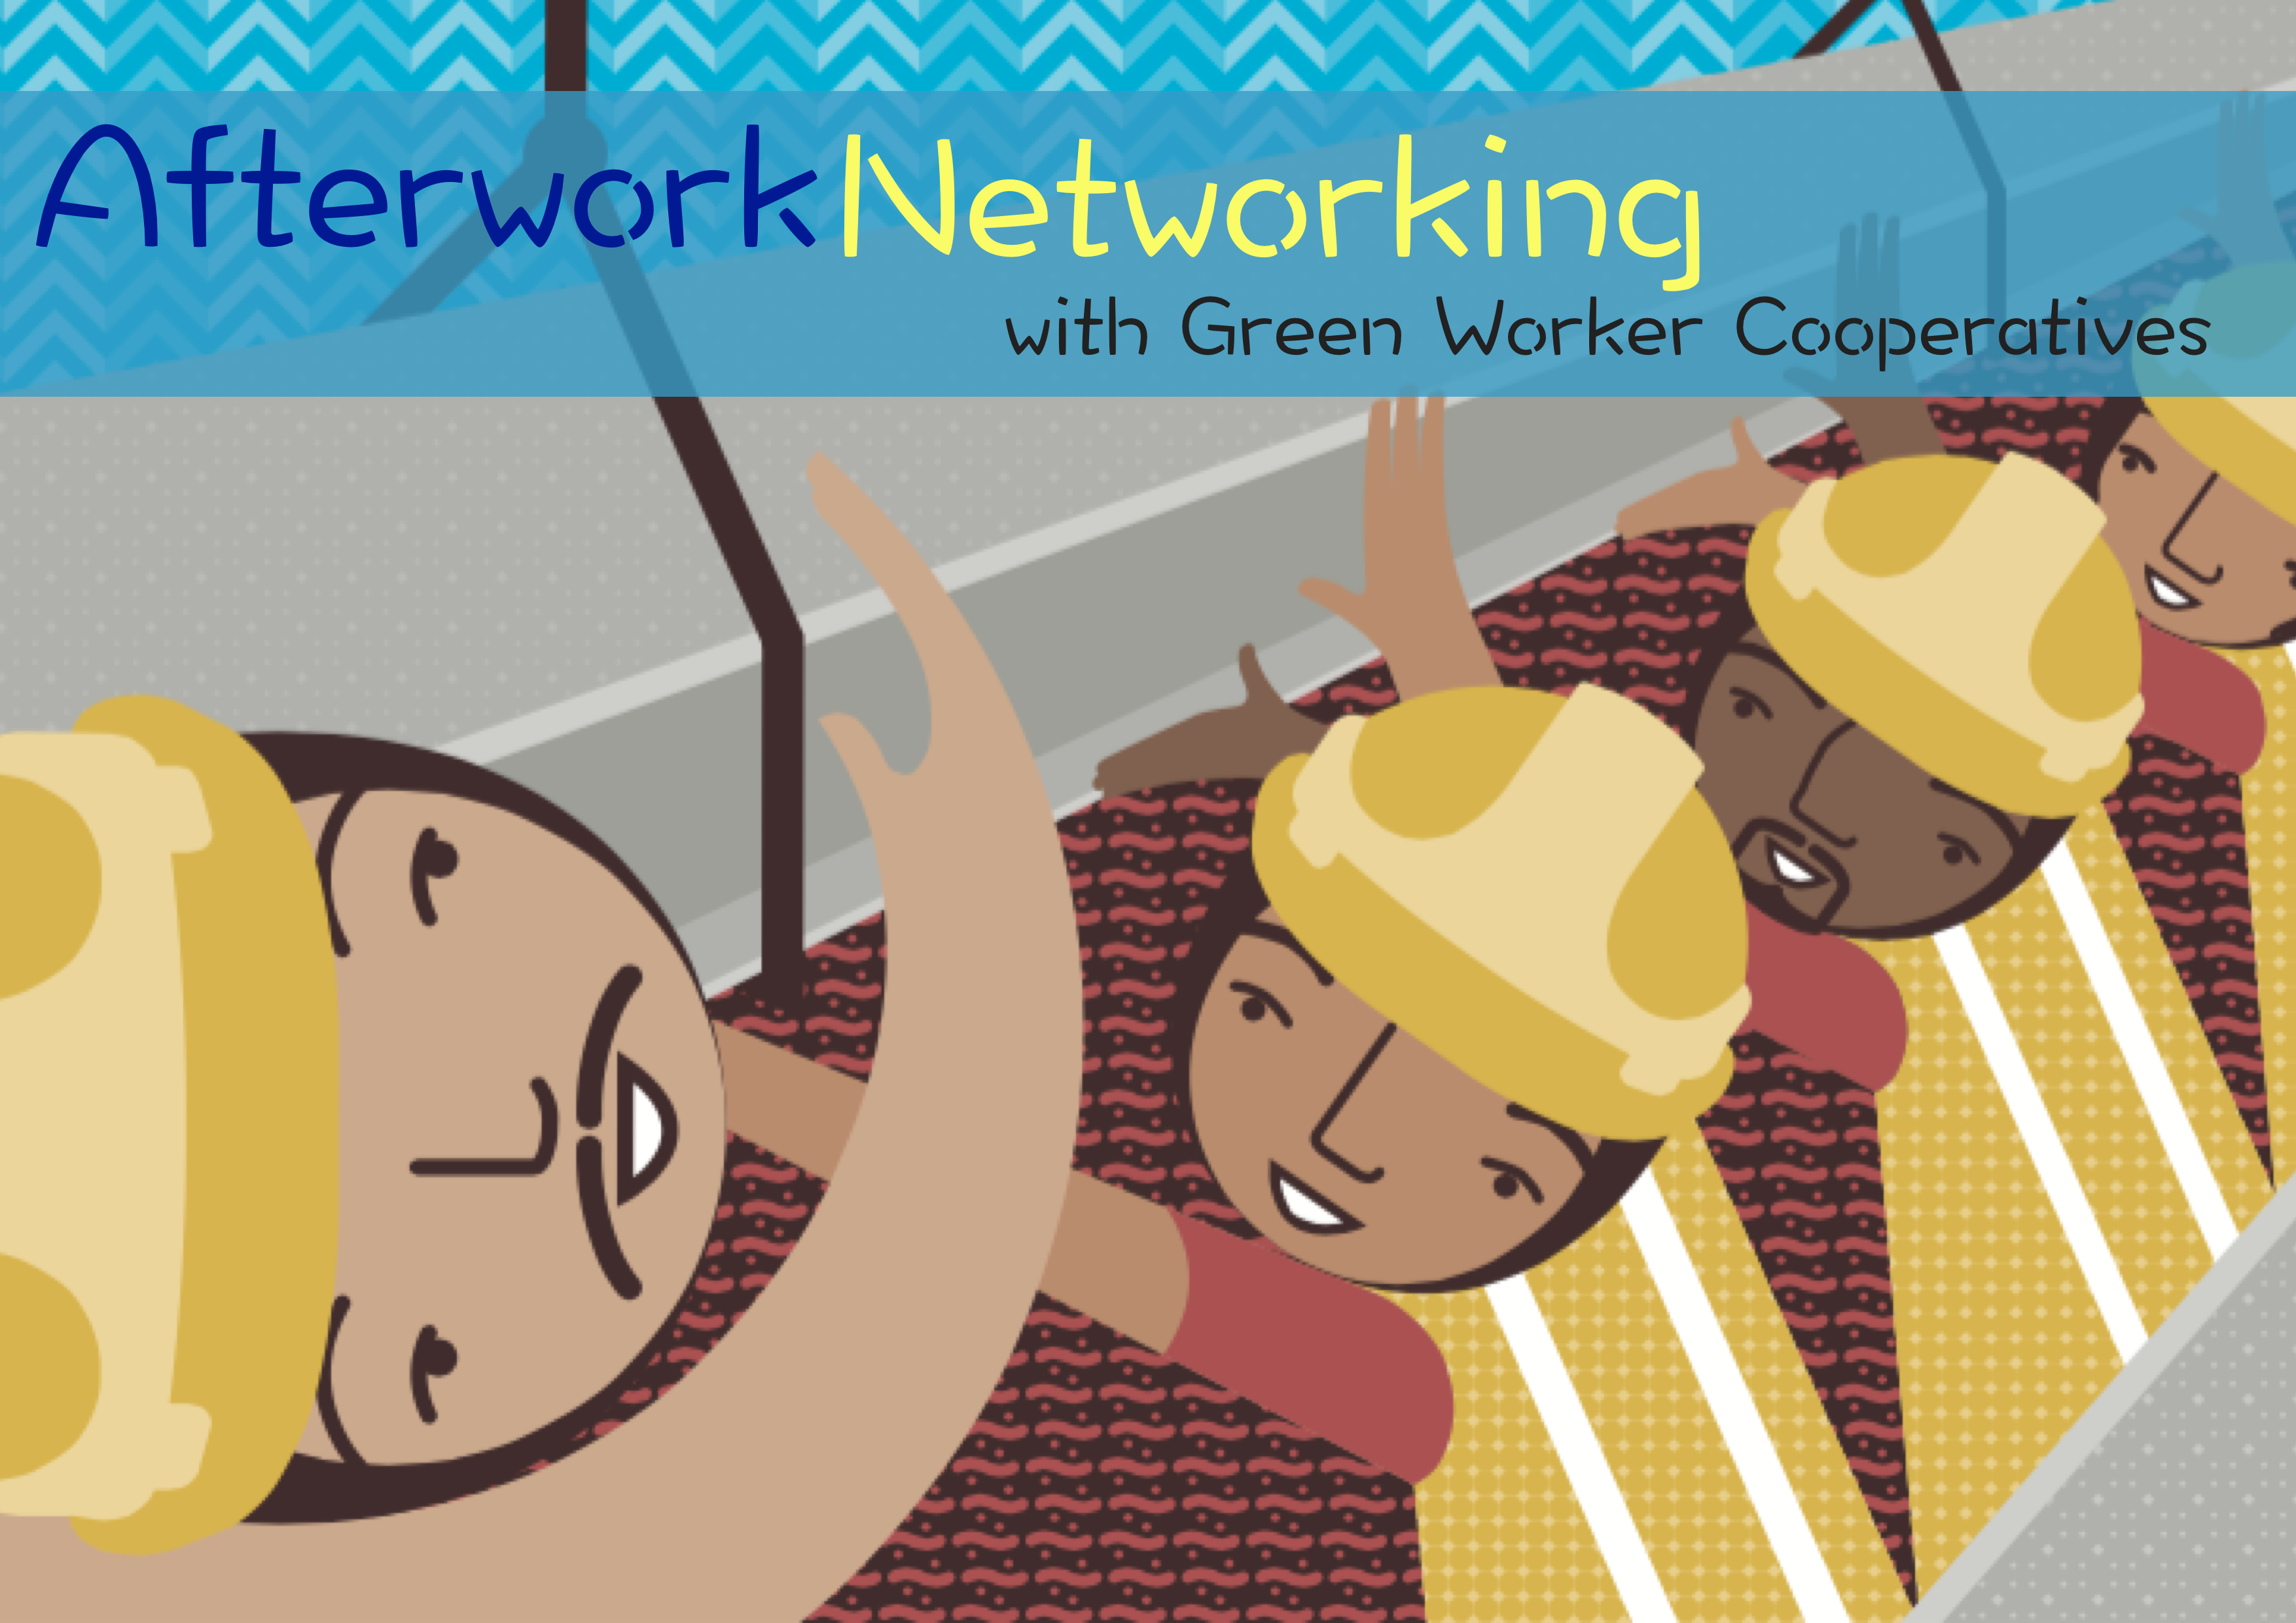 AfterworkNetworking_construction_image.png